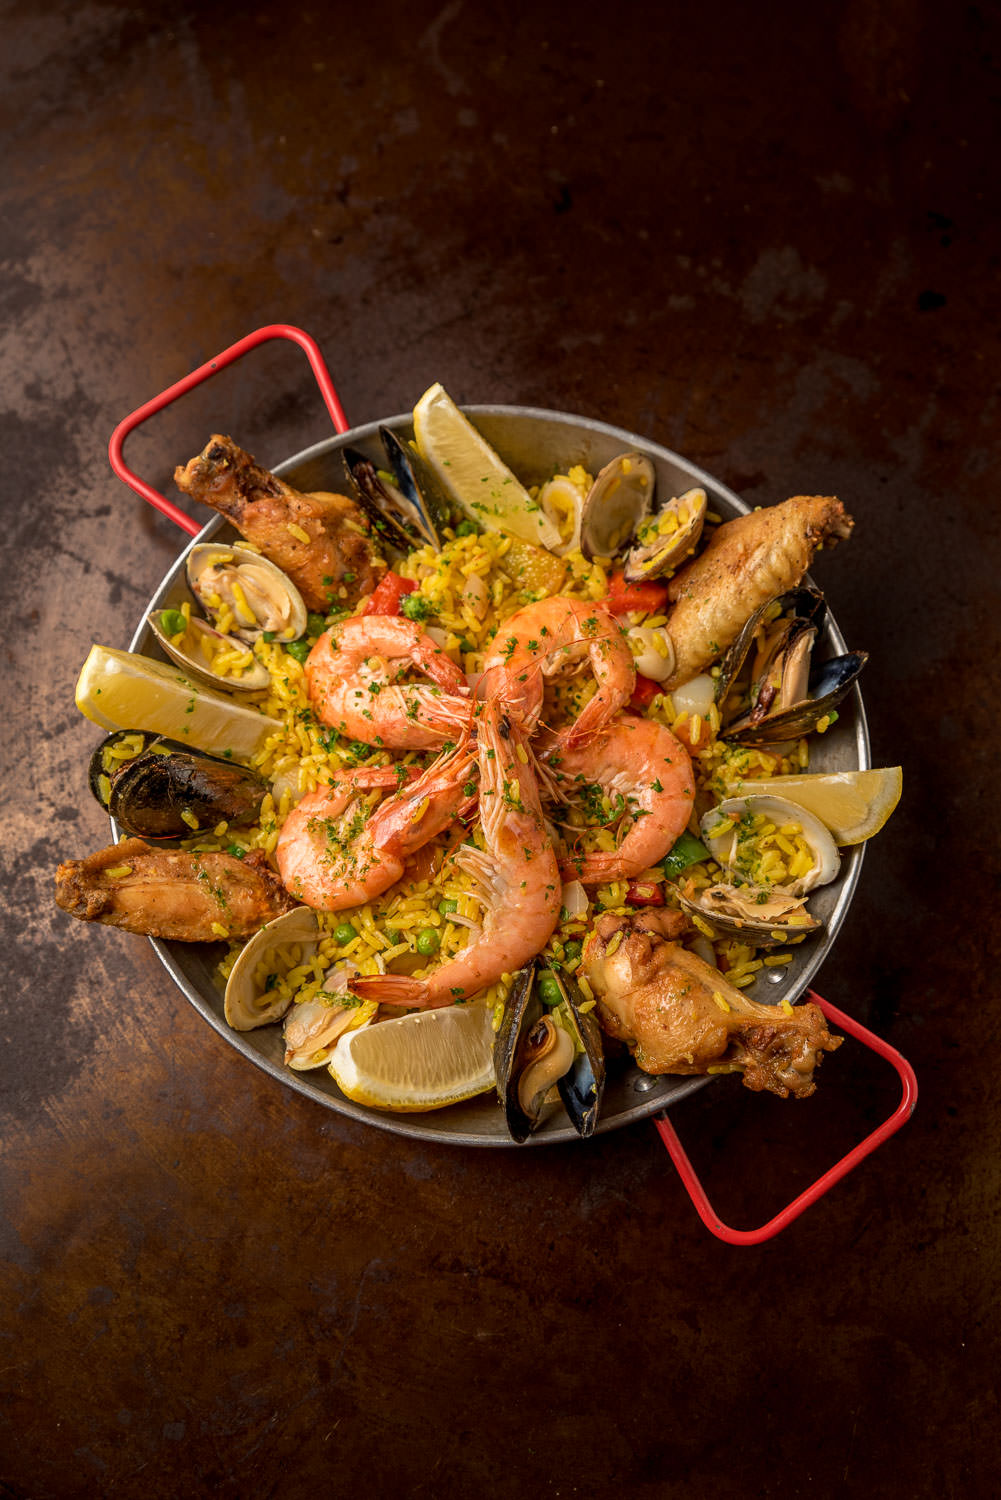 Paella mixta - Classic mixed seafood, chicken, and pork paella